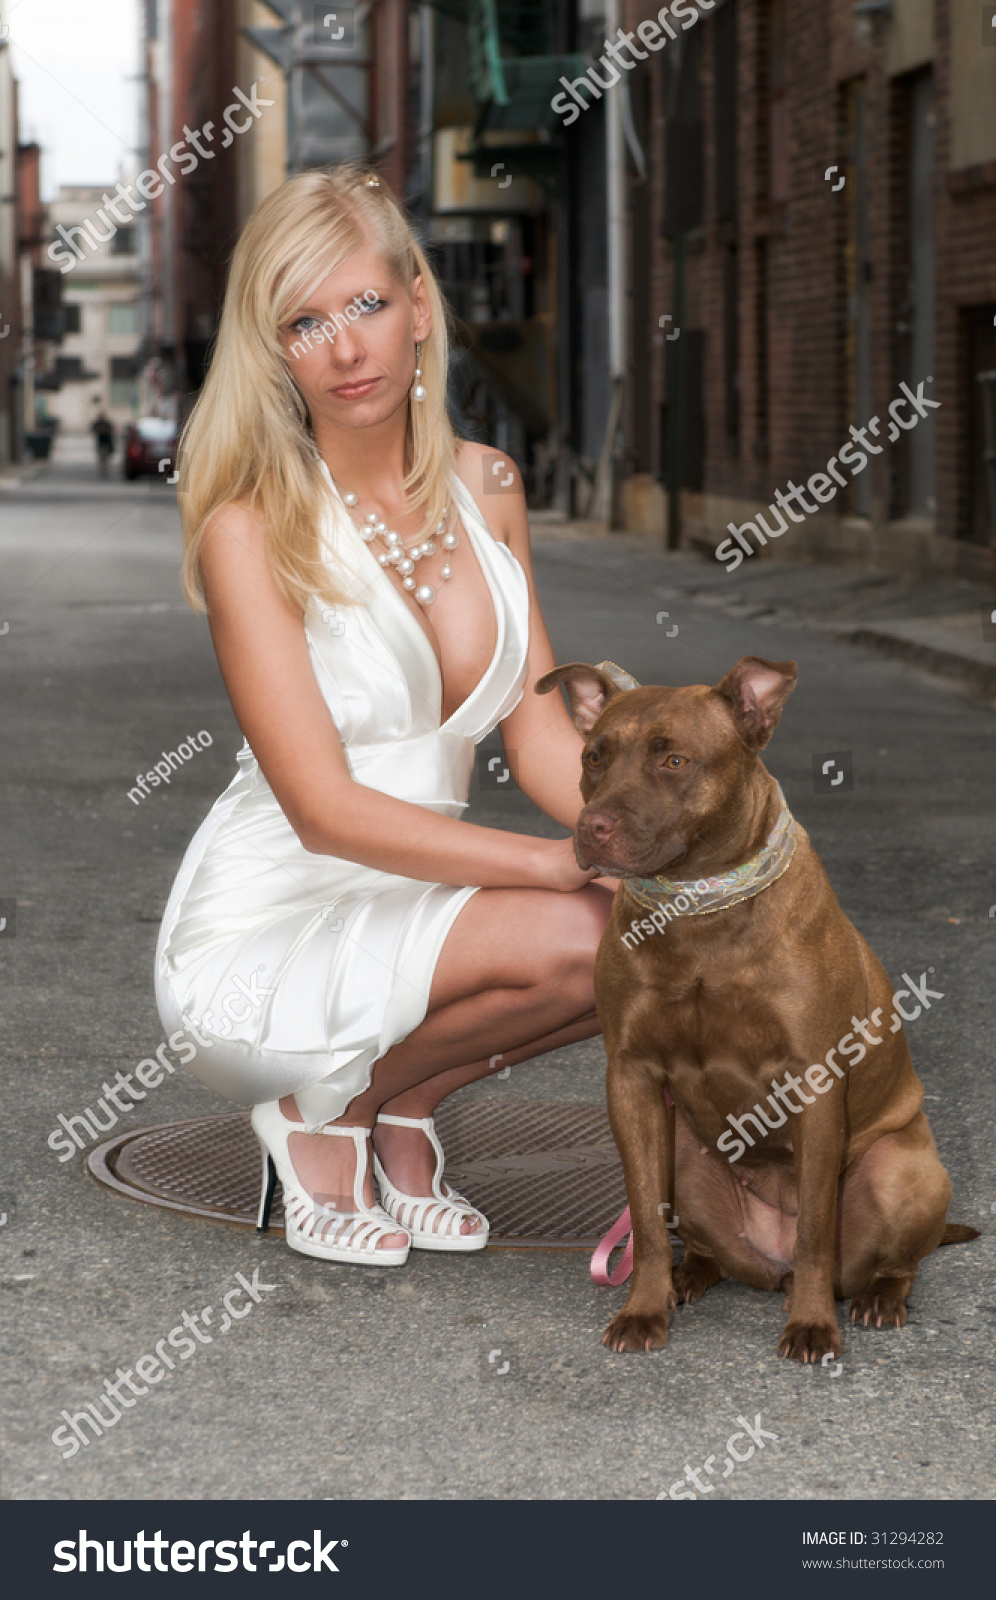 dog high chair red salon chairs sexy beautiful blond woman brown pit stock photo 31294282 - shutterstock